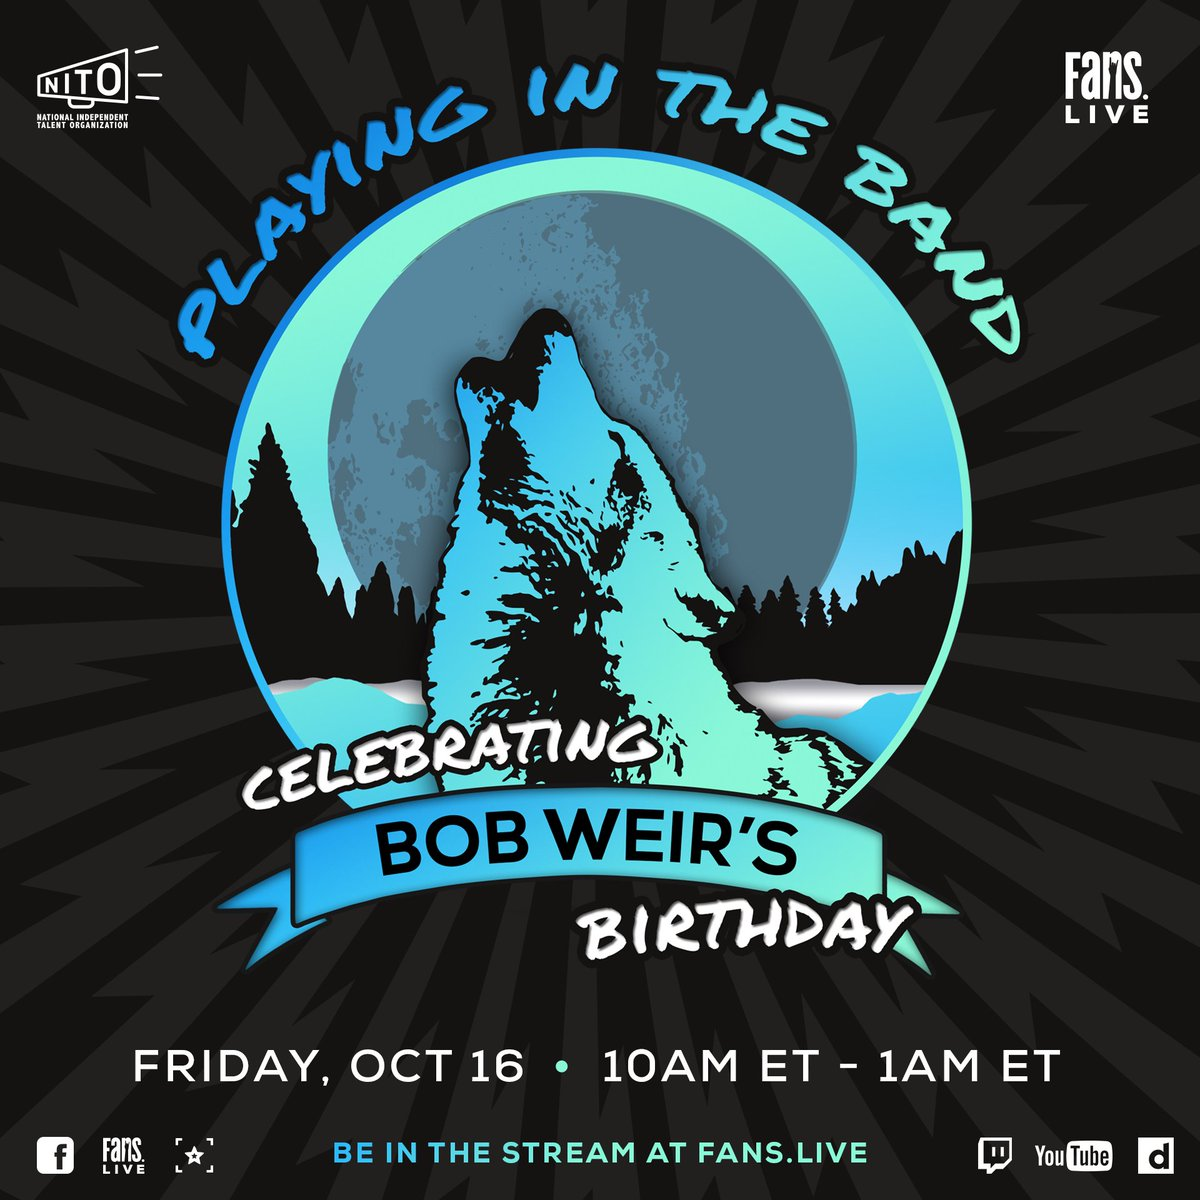 This Friday, on my birthday, @FansBelongHere is hosting a stream of archival shows, memories, musical selections and more. Tune in and support the @NITO_Live while you watch here: fans.live.